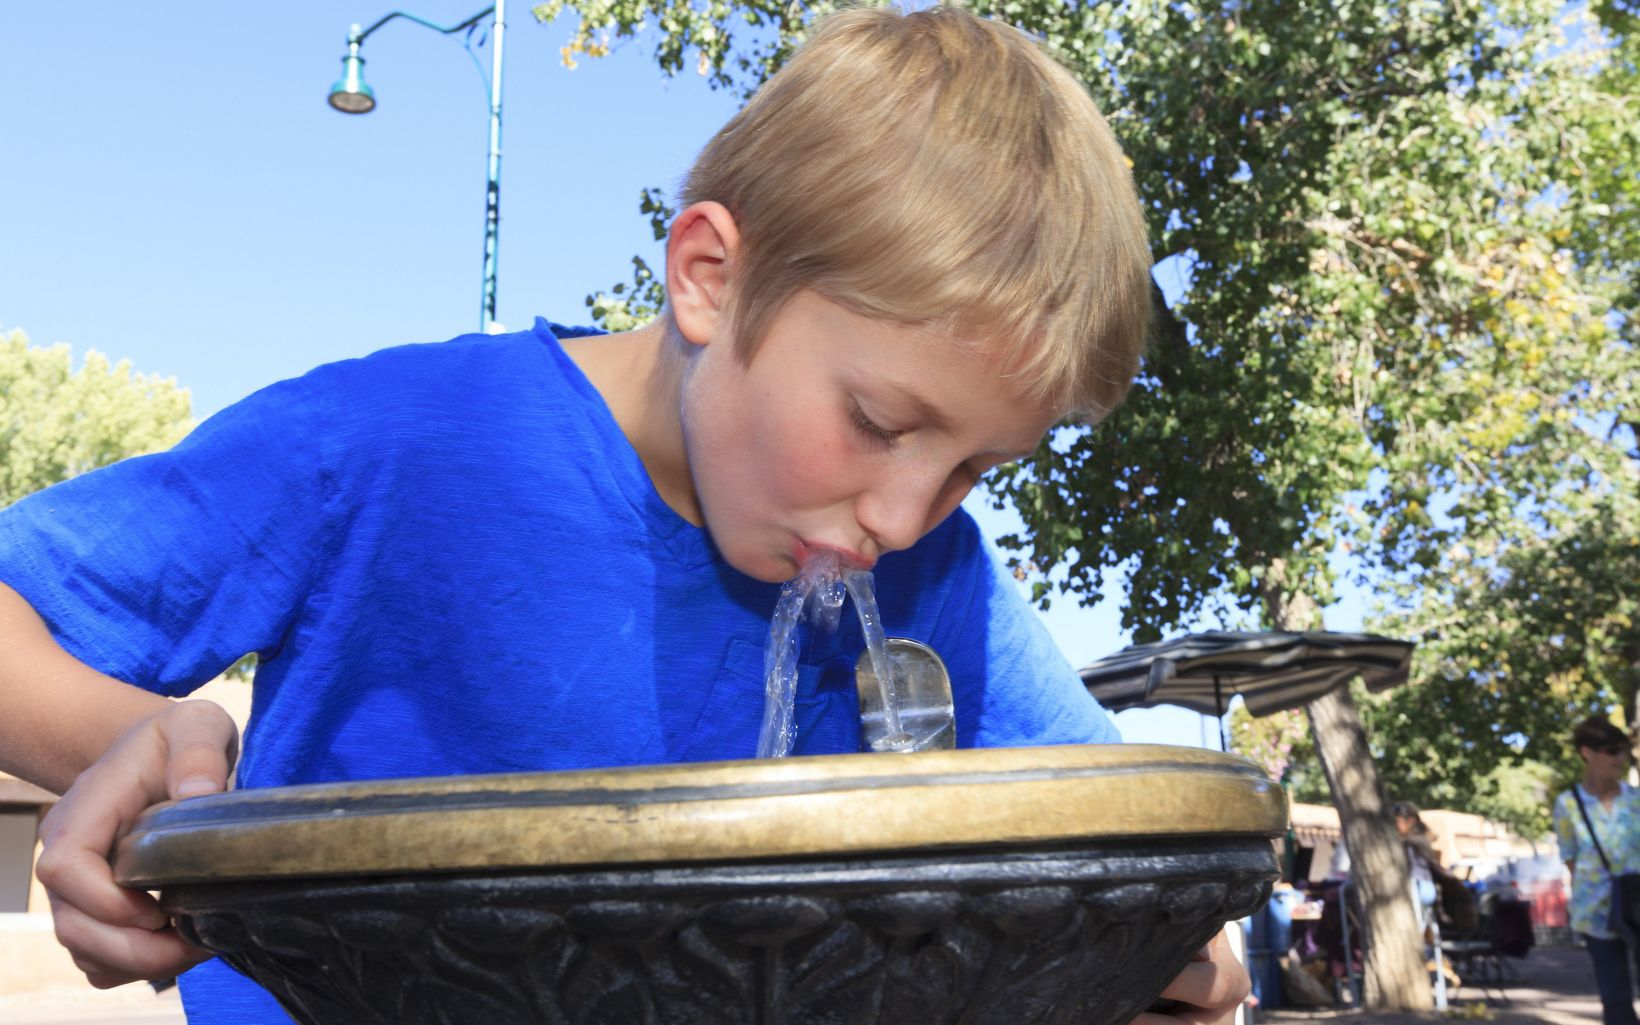 A boy drinks water from a fountain